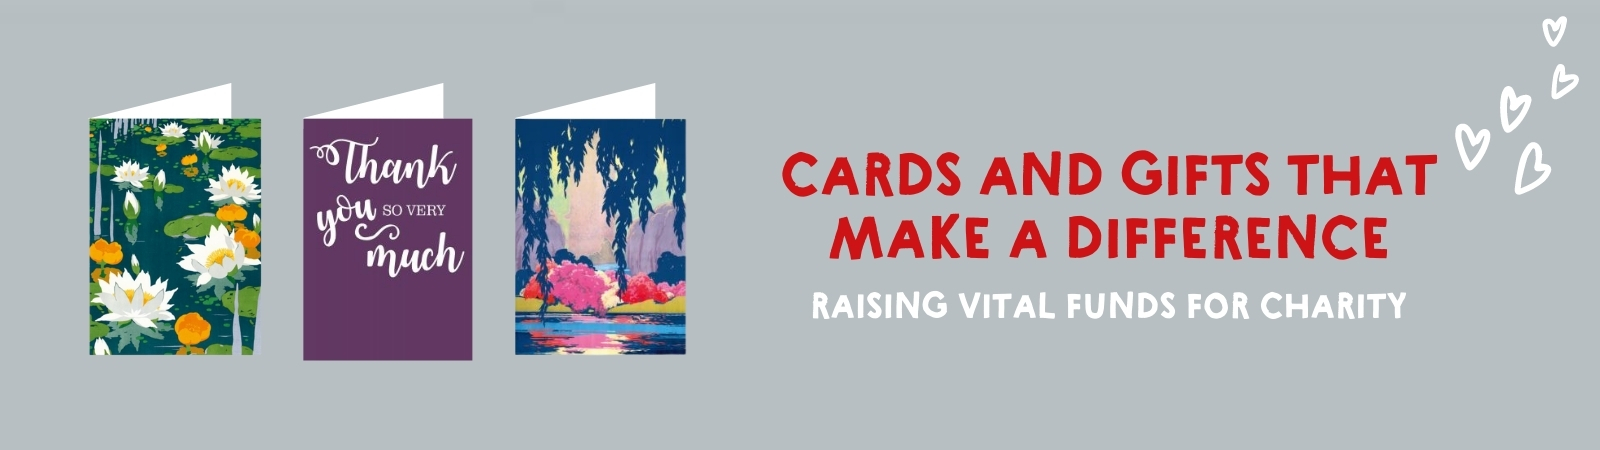 cards and gifts that make a difference